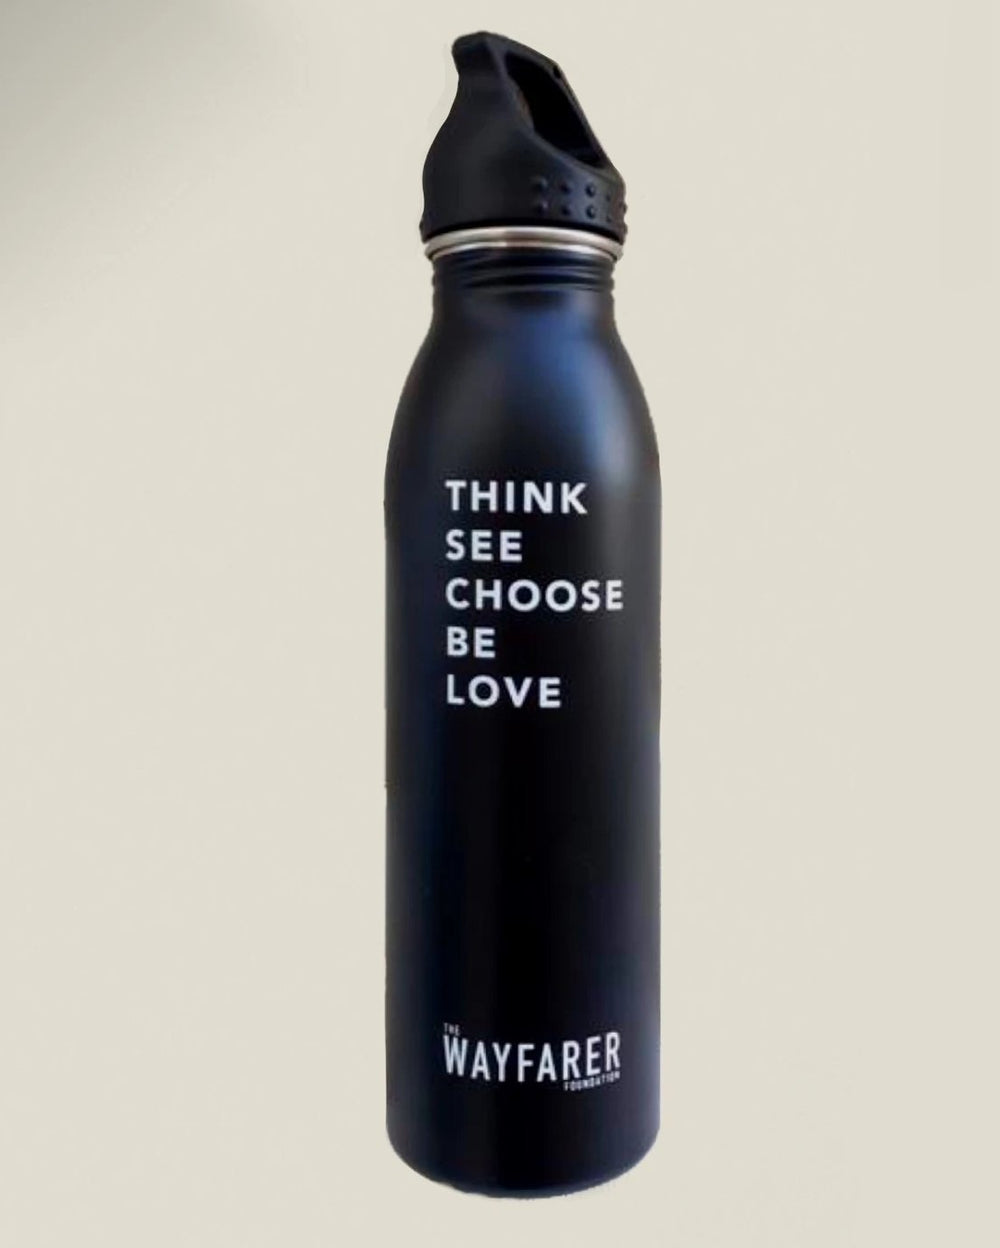 THINK SEE CHOOSE BE LOVE Bottle